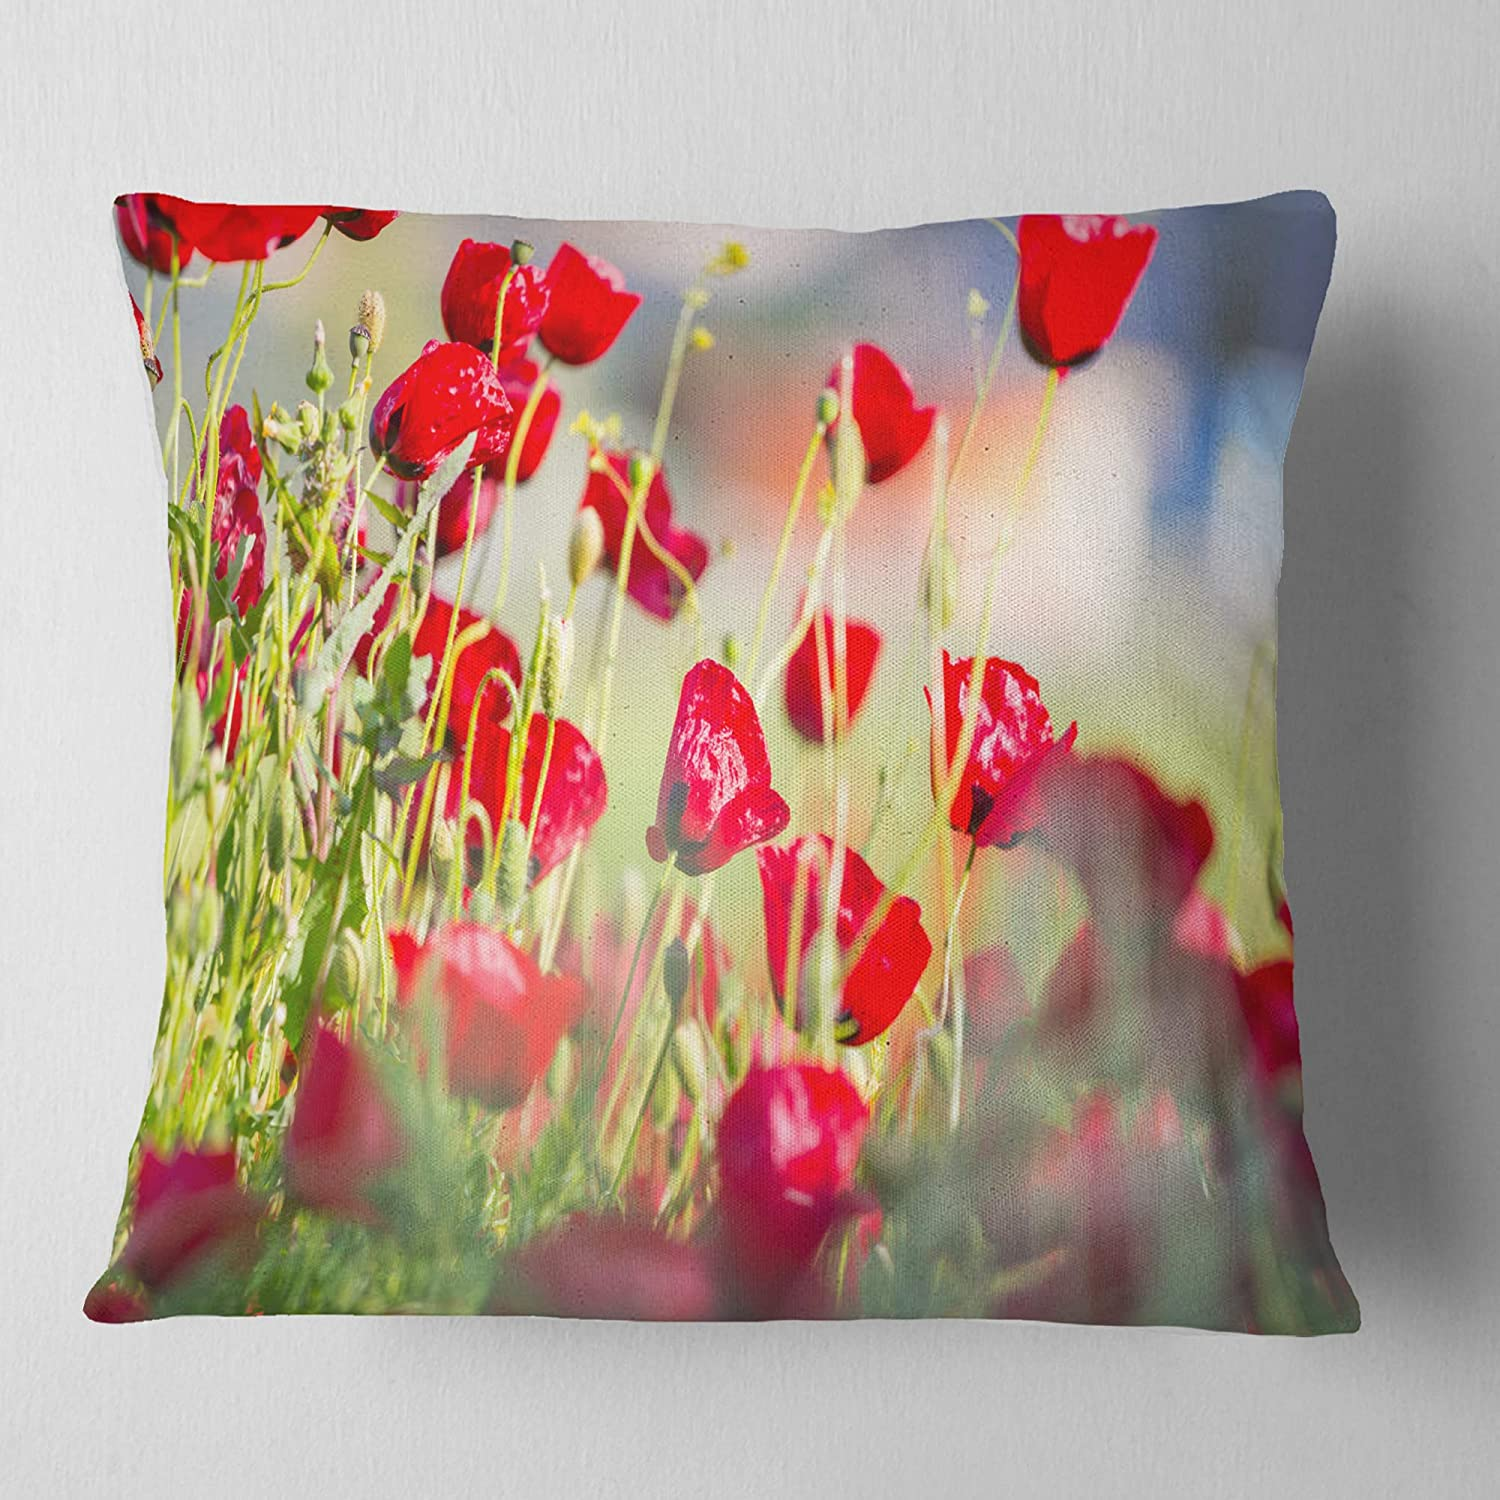 Insert Printed On Both Side in x 26 in Sofa Throw Pillow 26 in Designart CU12620-26-26 Beautiful Red Poppy Flowers View Floral Cushion Cover for Living Room